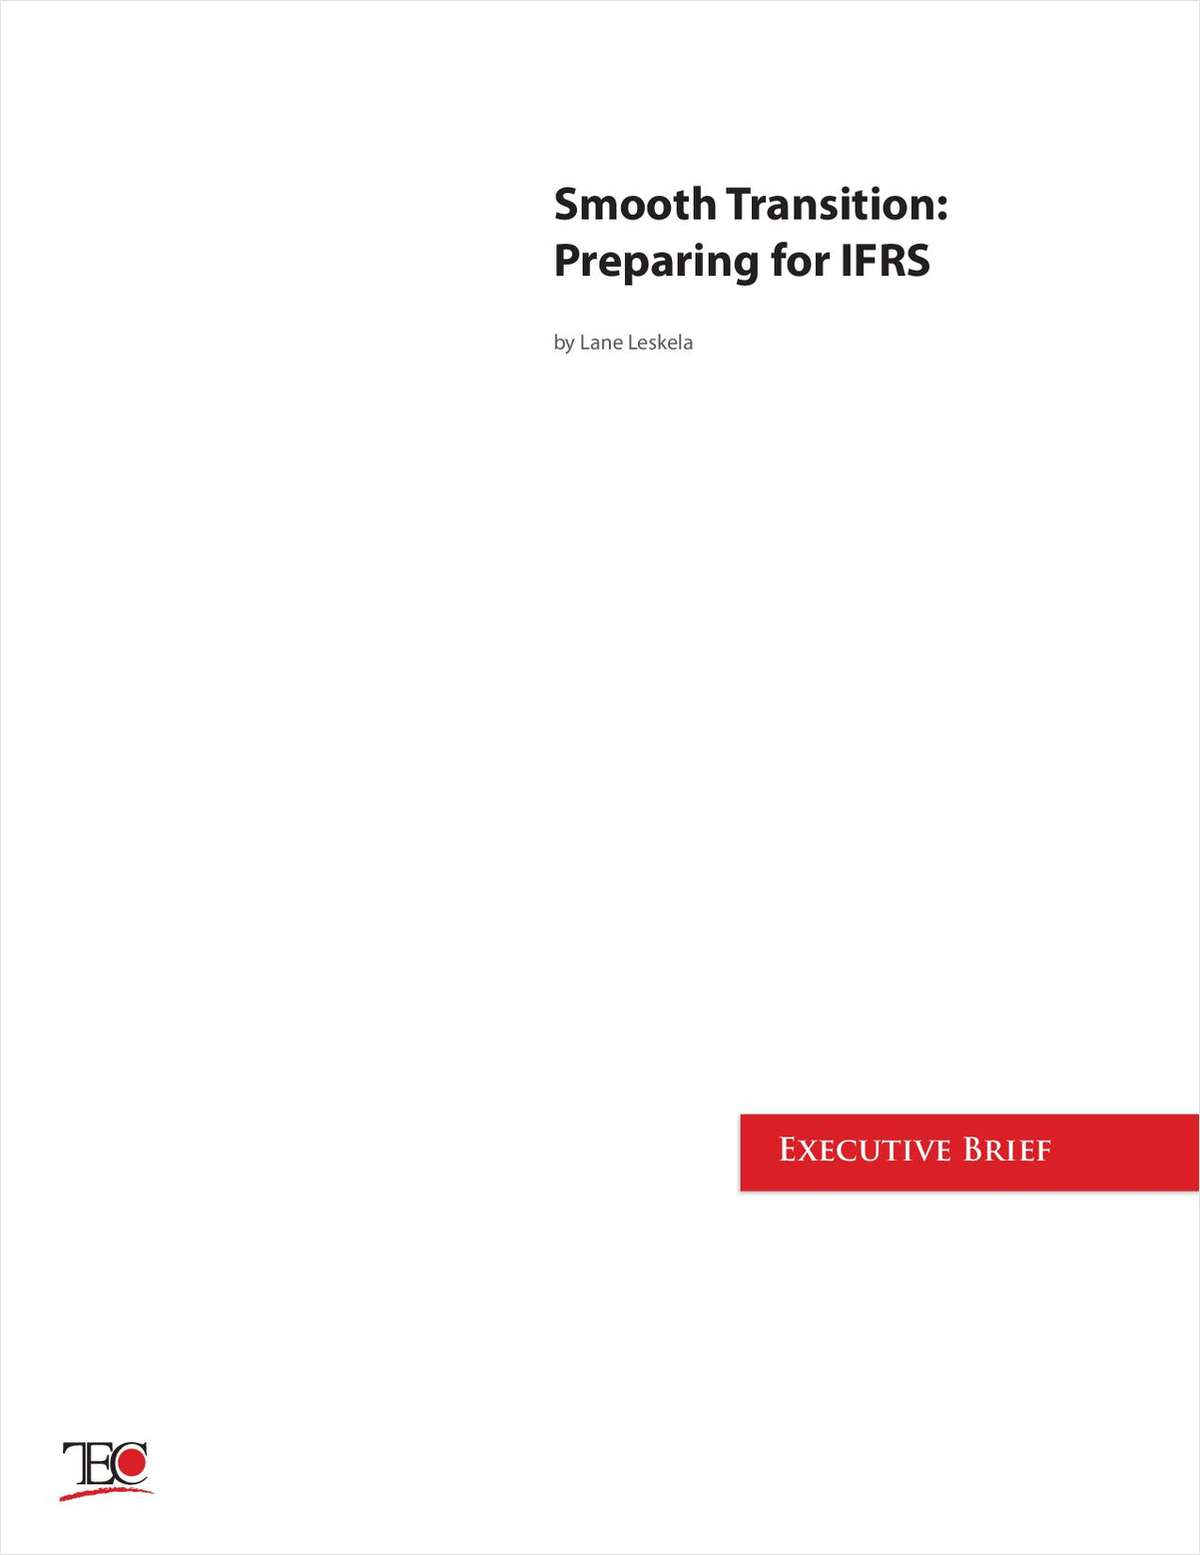 Smooth Transition: Preparing for IFRS